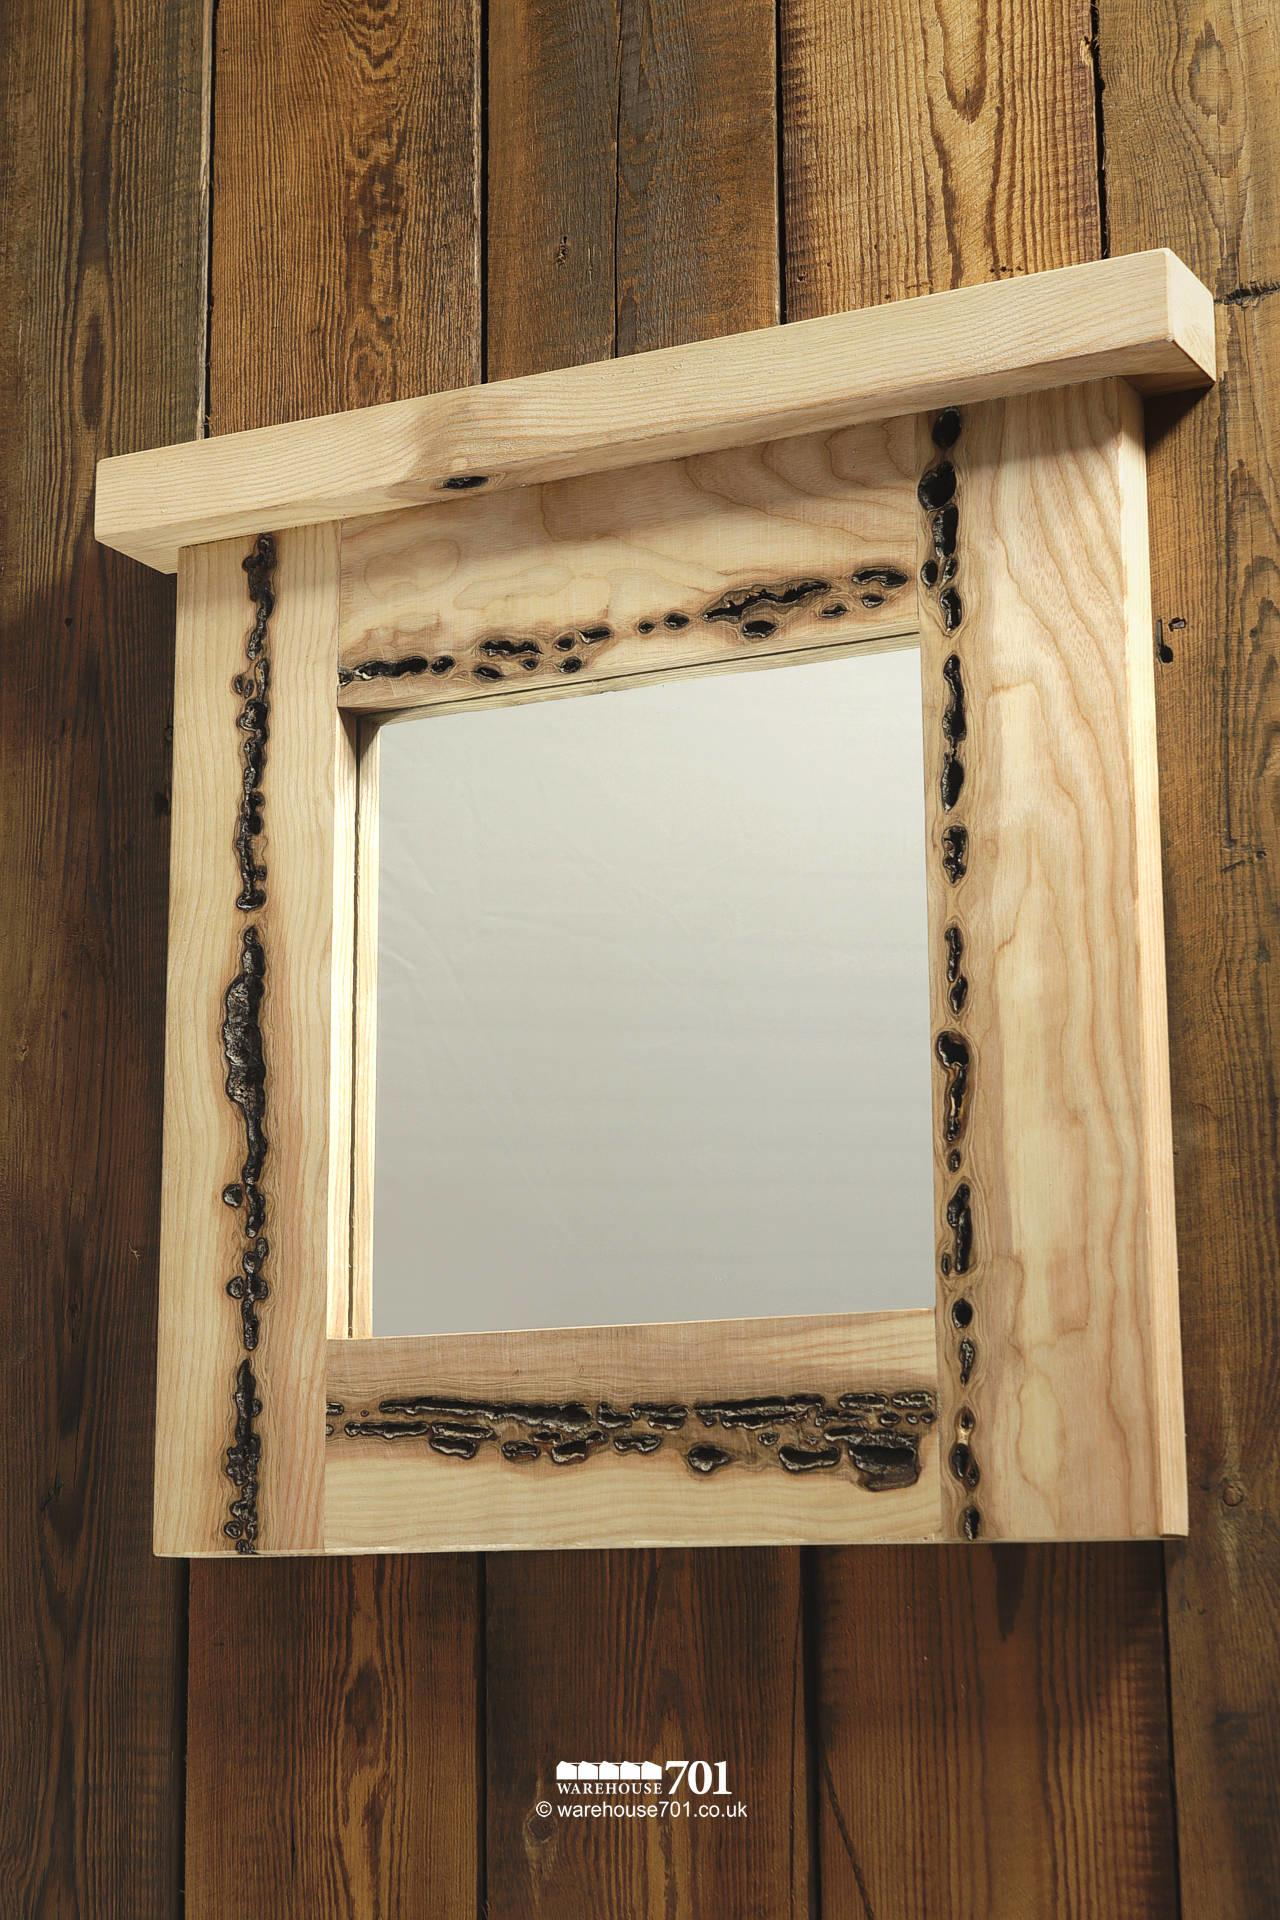 Amazing NEW Handmade Small Burr Ash Wood Mirror with Integral Top Shelf